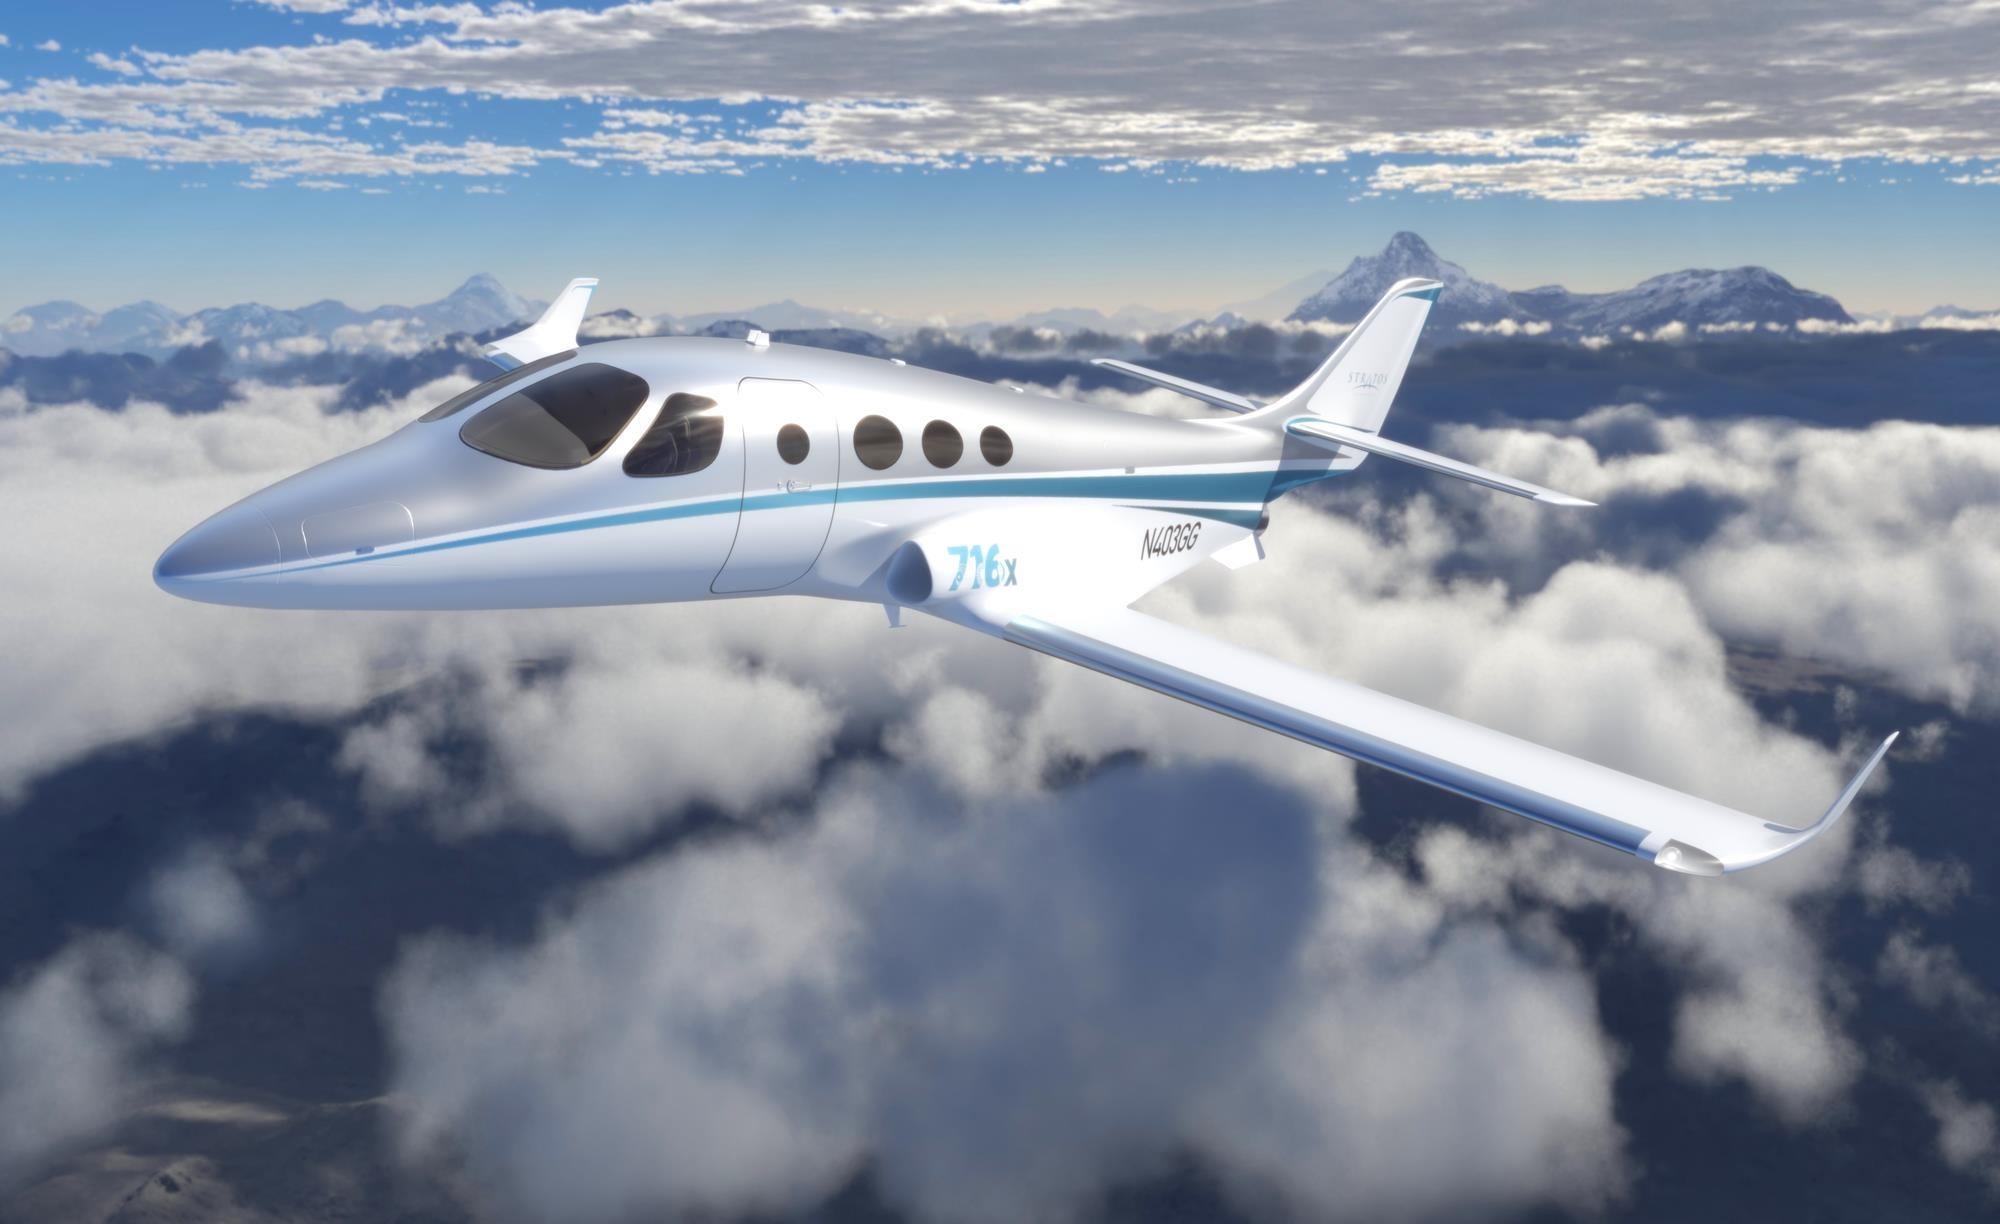 First Prototype Of Stratos 716 Very Light Jet Takes Shape News Flight Global